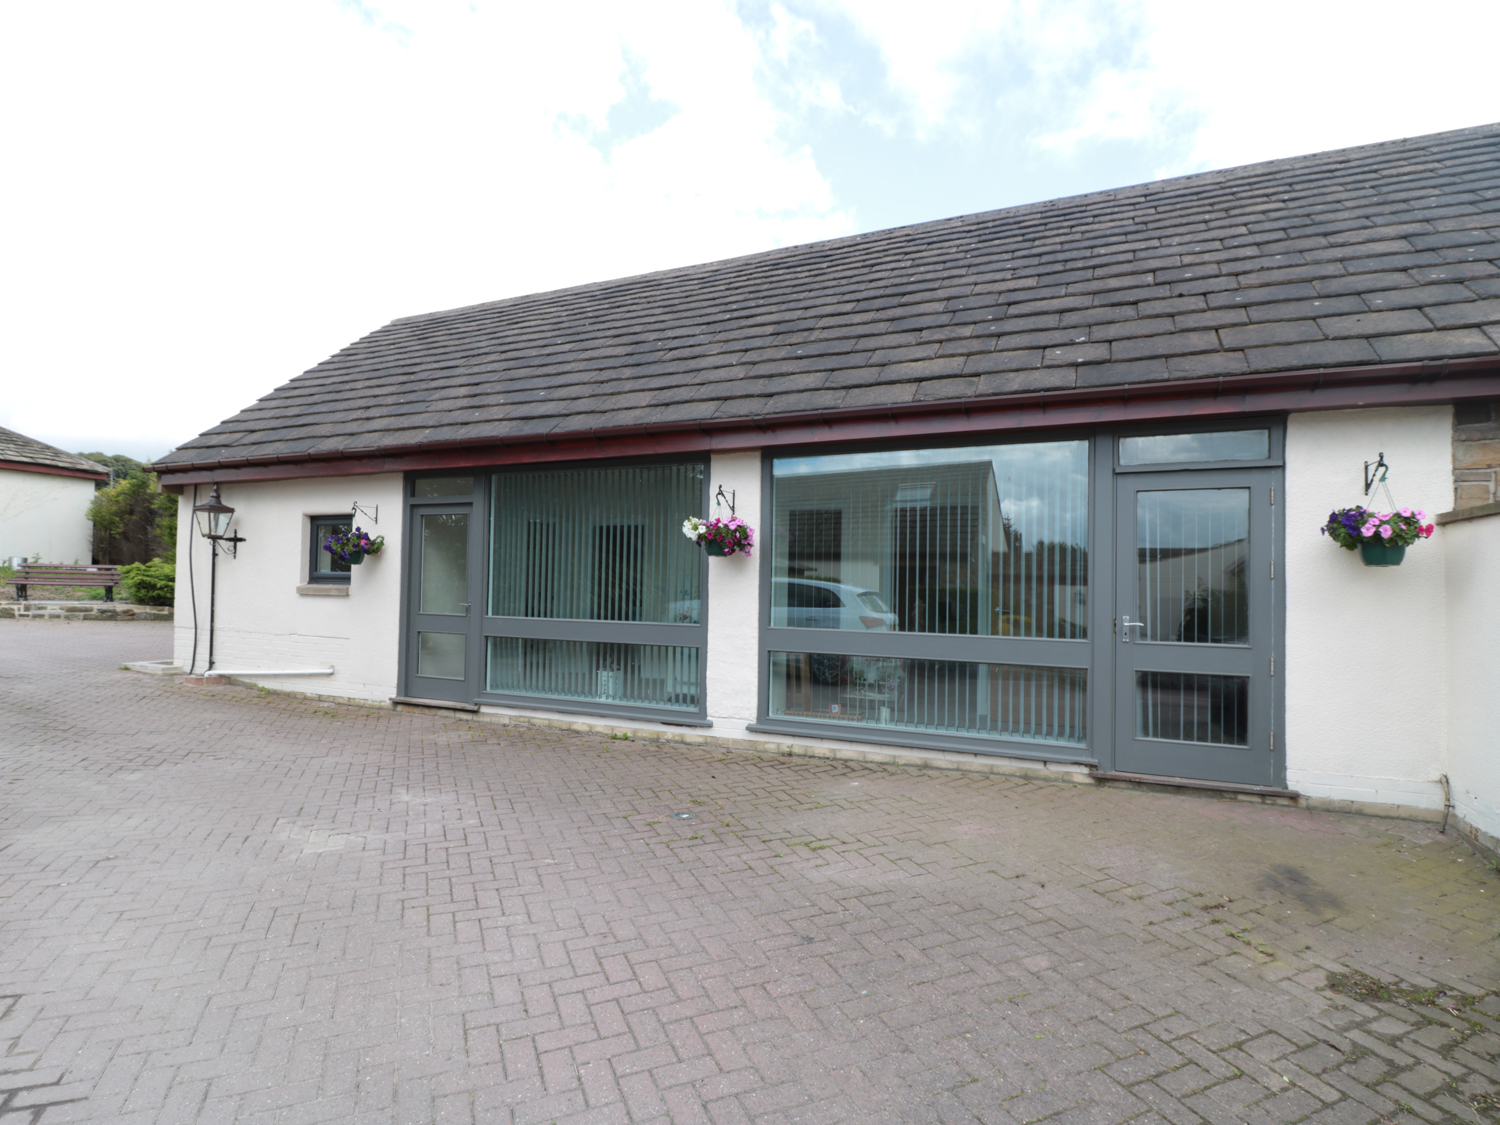 2 bedroom Cottage for rent in Penistone